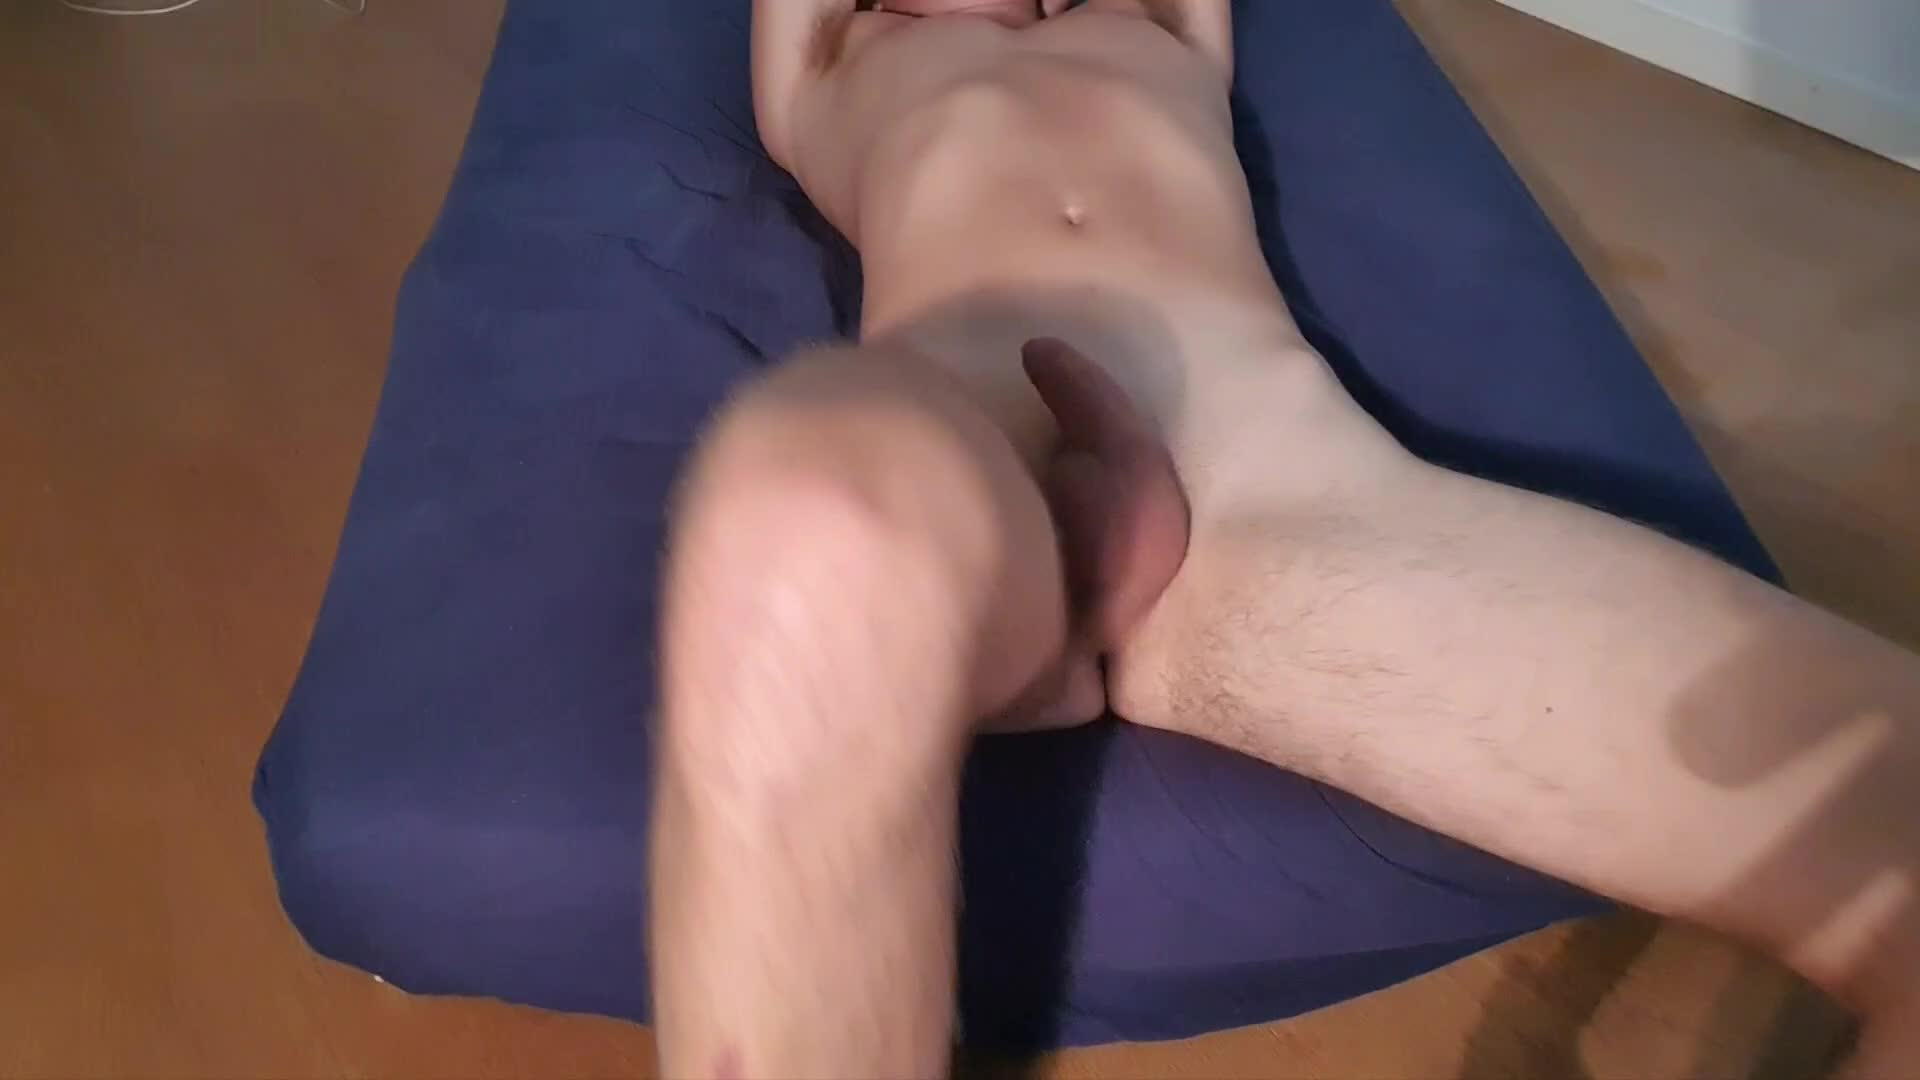 How I would move as you tease me 😜 messages from girls are welcome